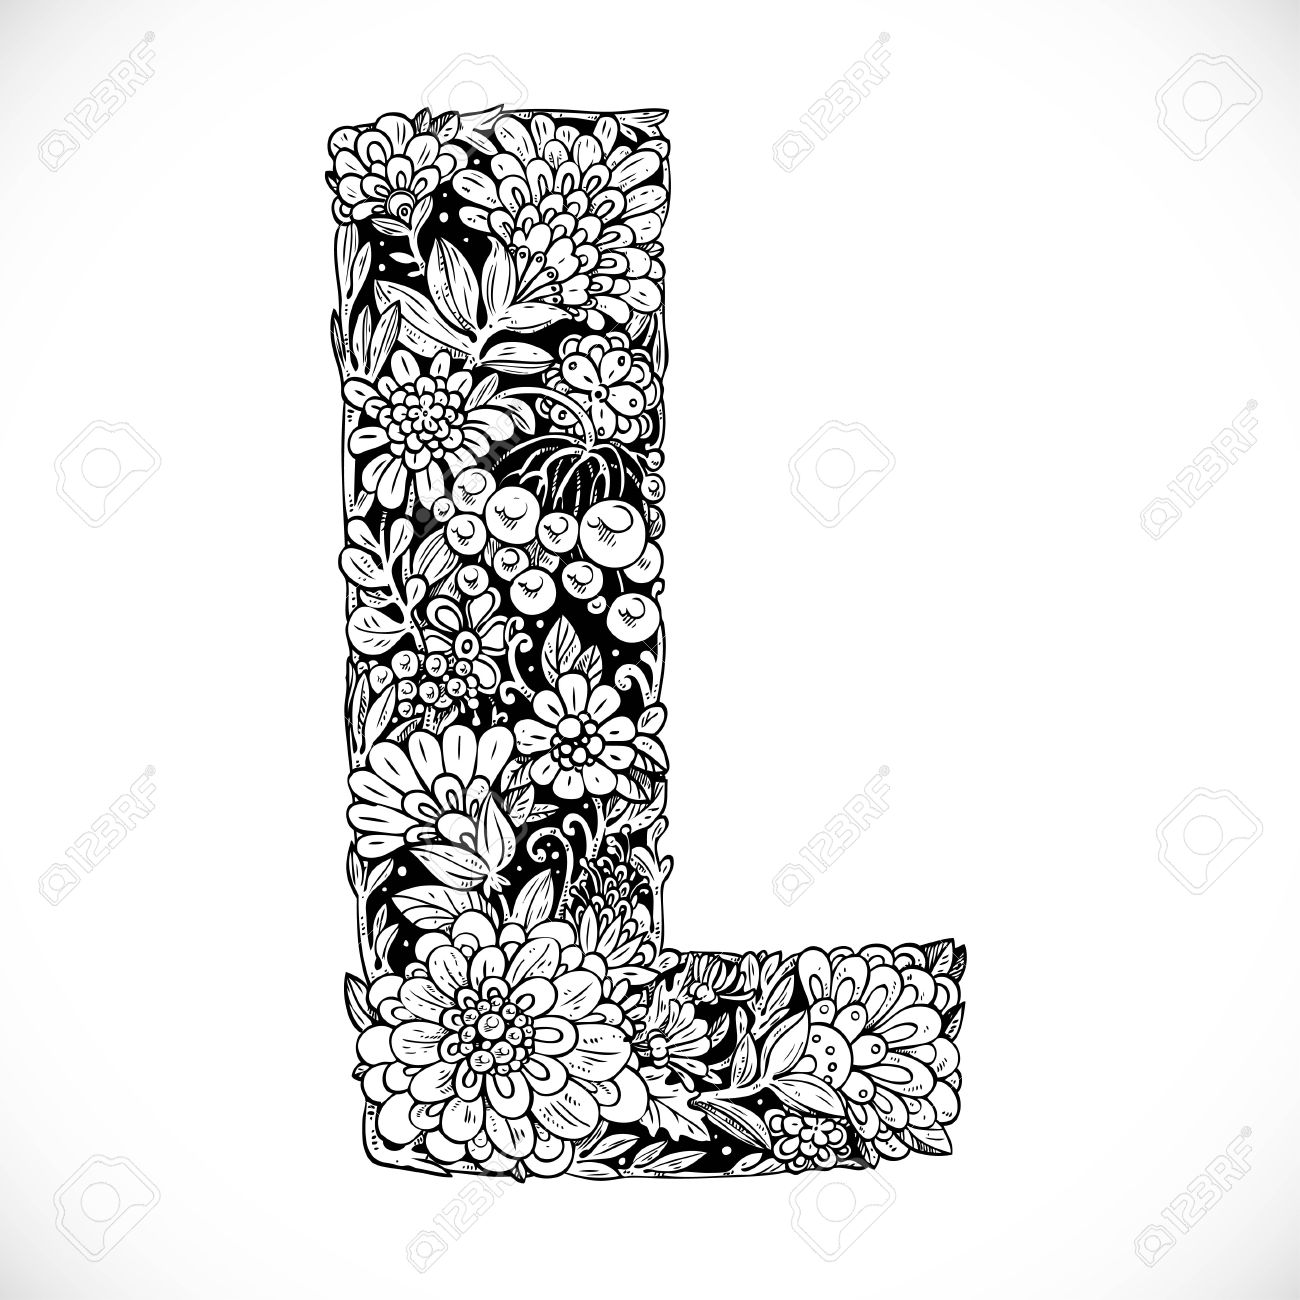 Doodles Font From Ornamental Flowers Letter L Black And White